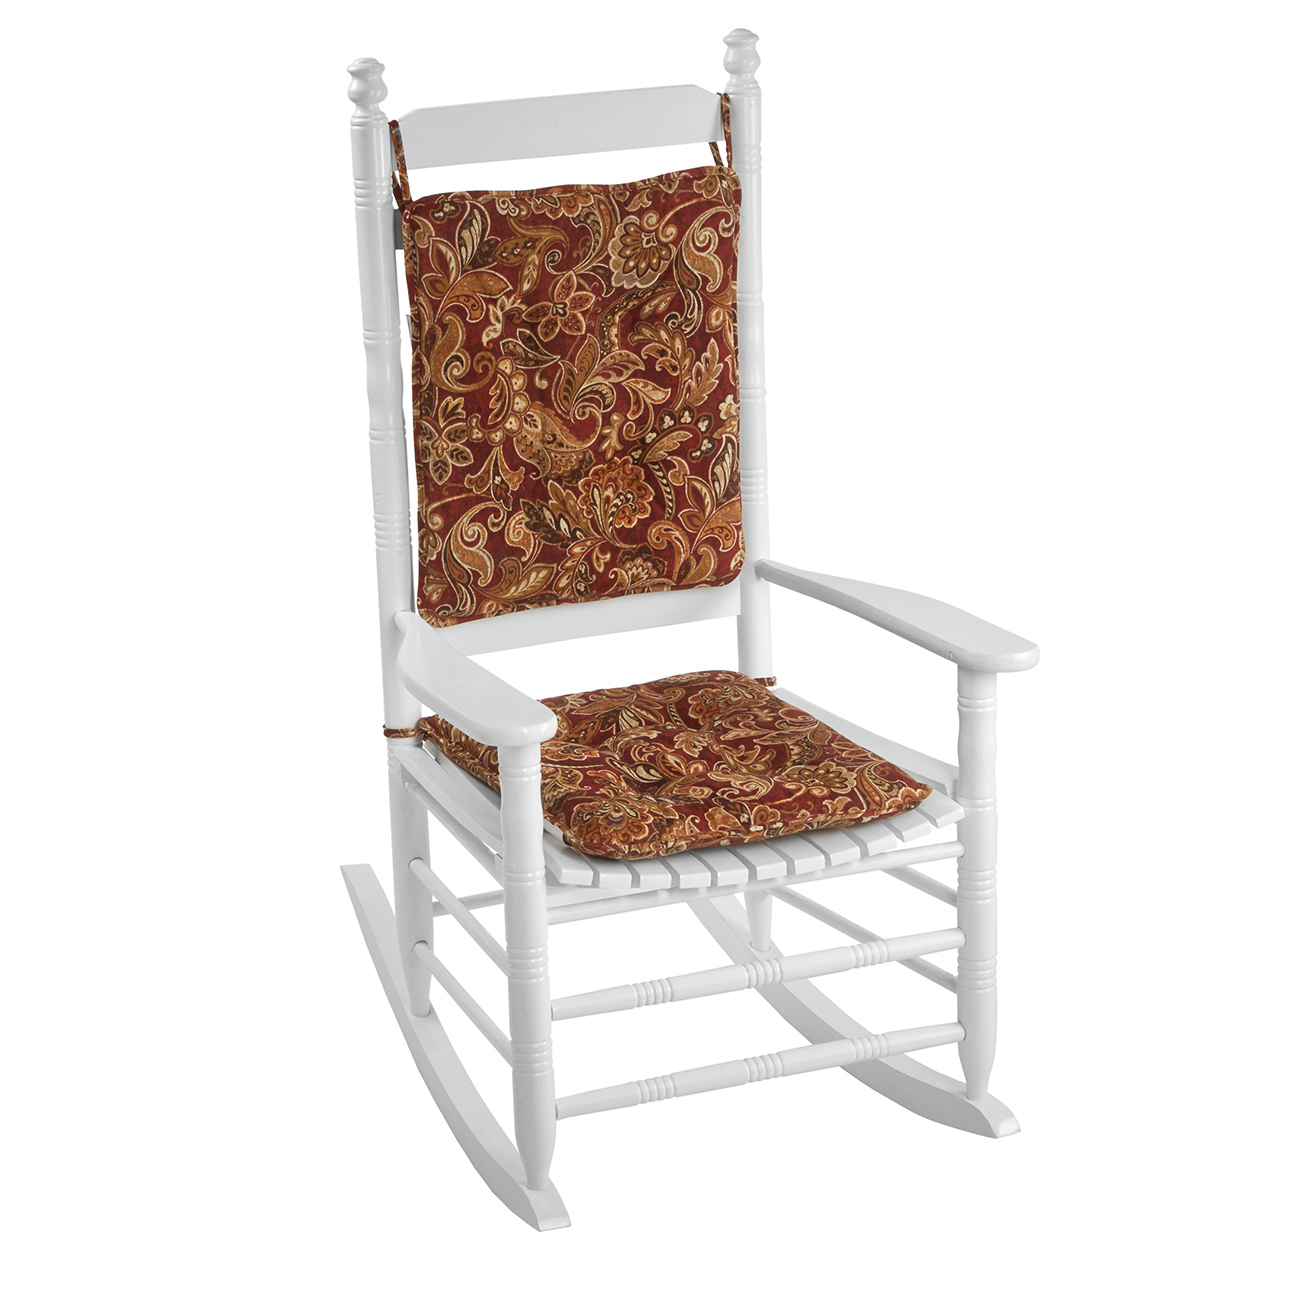 Garnet Floral Rocker Cushion Set  sc 1 st  Cracker Barrel & Indoor Furniture Rocker Seat Cushions - Cracker Barrel Old Country Store